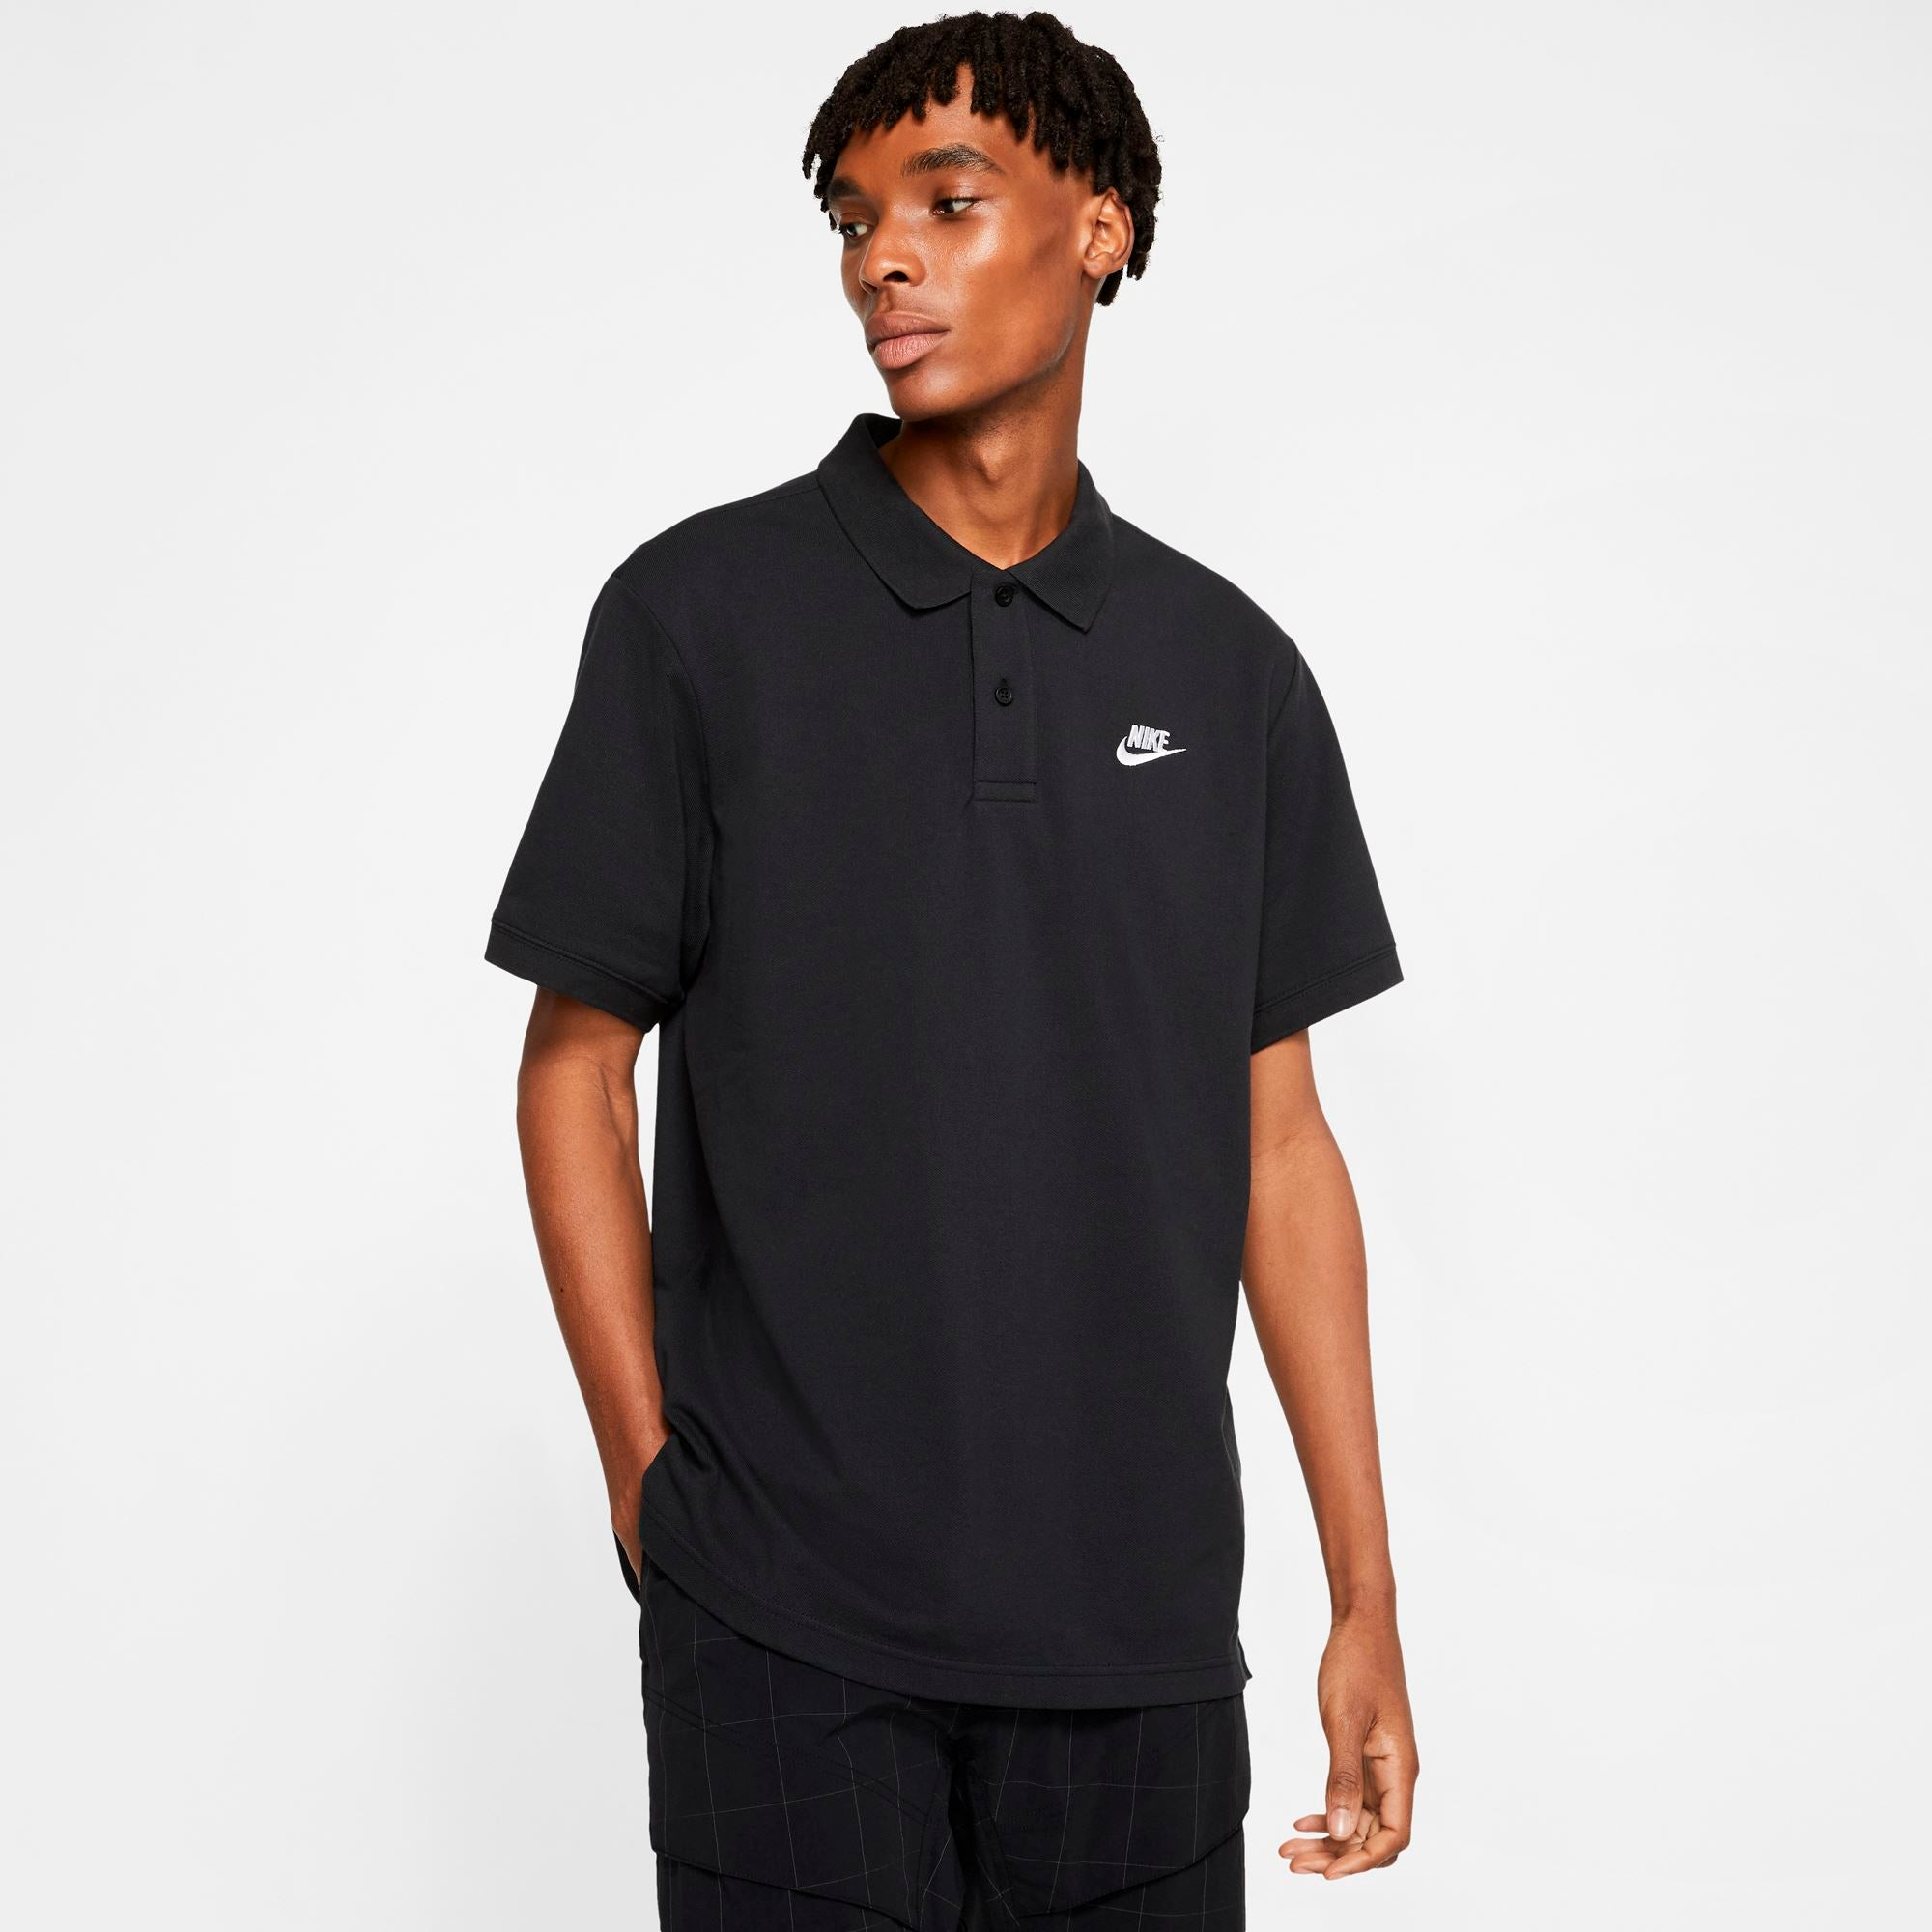 Nike Mens Sportswear Polo - Black/White SP-ApparelTees-Mens Nike